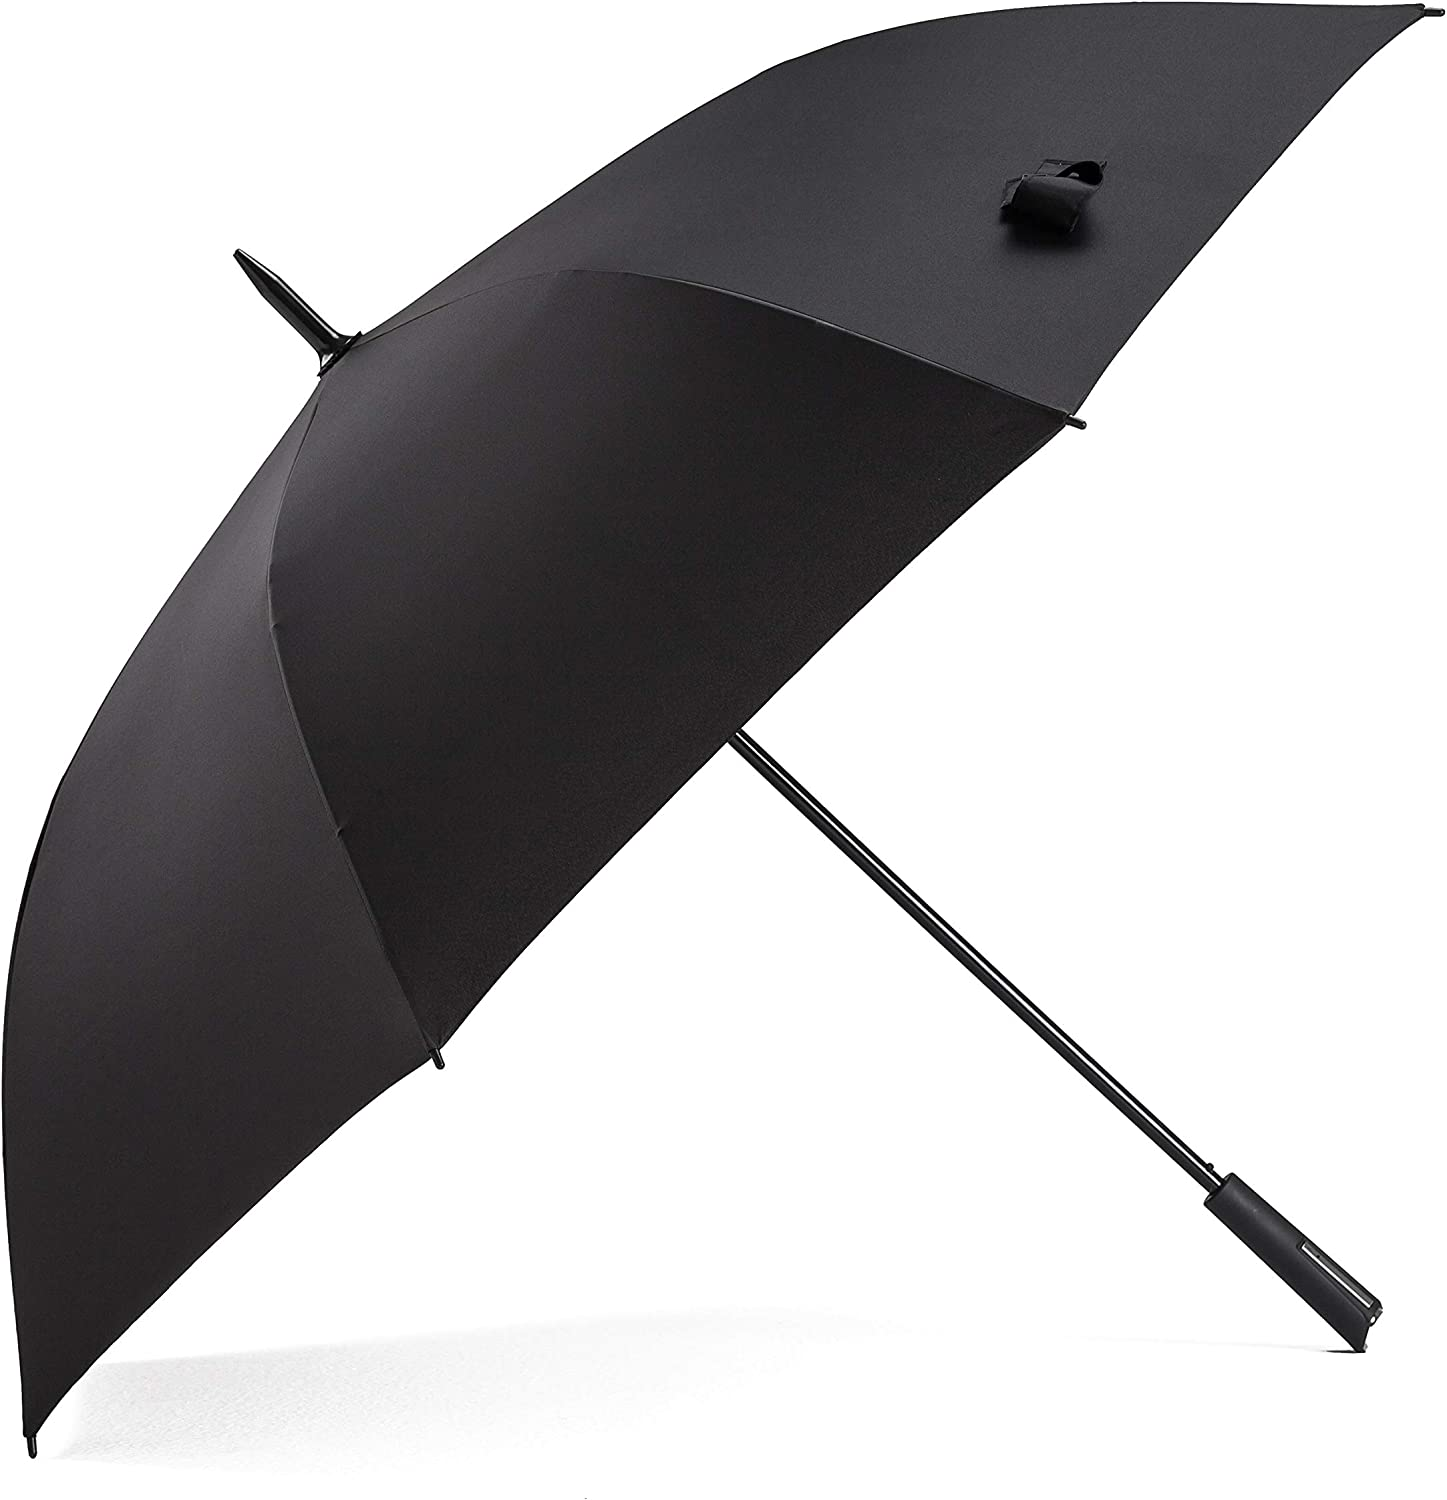 Umenice Customize golf Umbrella Nashville-Davidson Mall We OFFer at cheap prices UUG-30A01 Black for gift